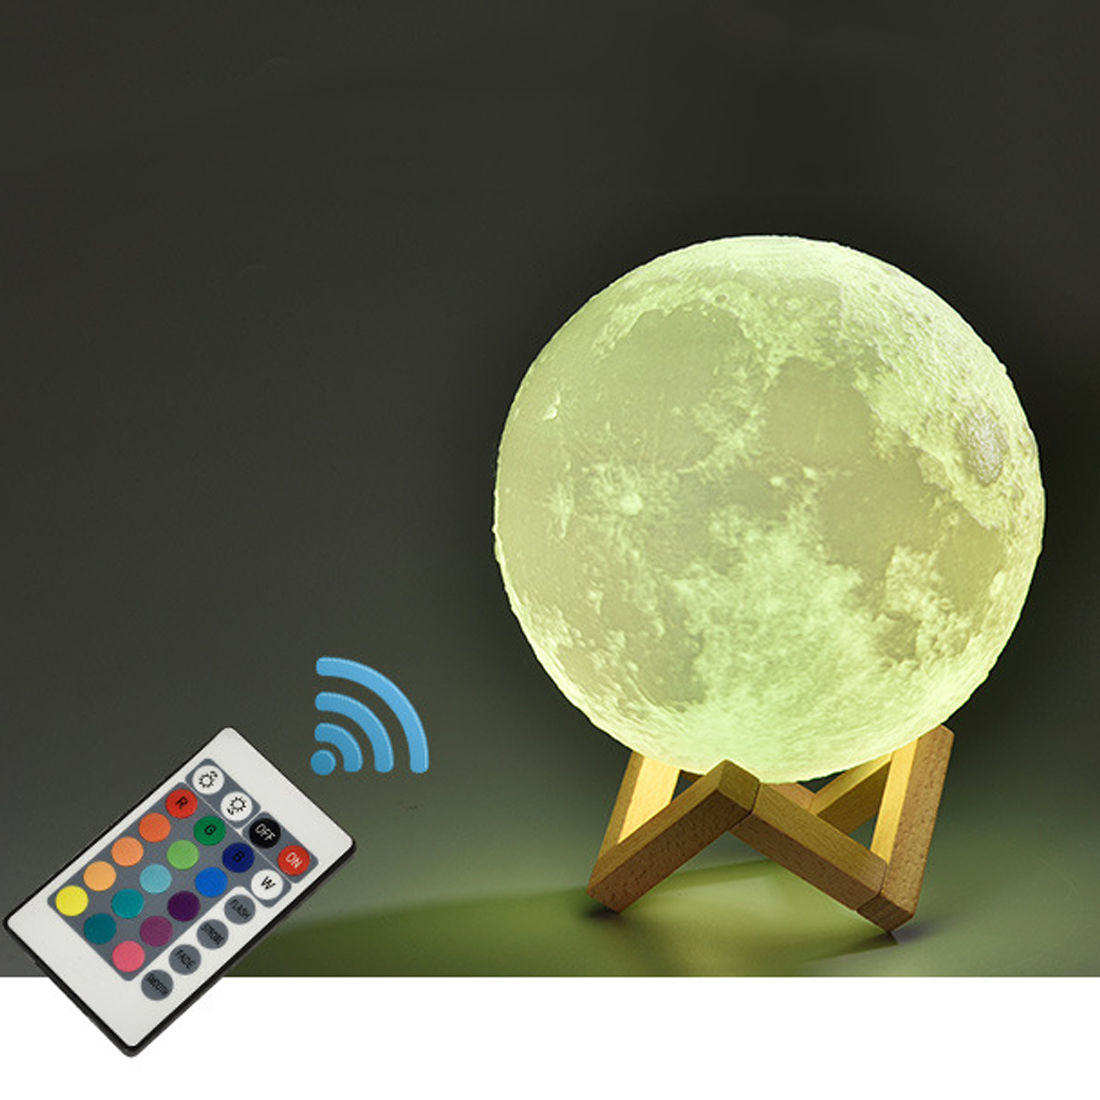 16 Color Change 3D Print Lamp Moon Bedroom Bookcase Night Light 3D Light Touch Switch Creative Gifts Rechargeable Moon Lamp 3d print moon lamp rechargeable night light rgb color change touch switch bedroom 3d lunar moon lamp home decor creative gift